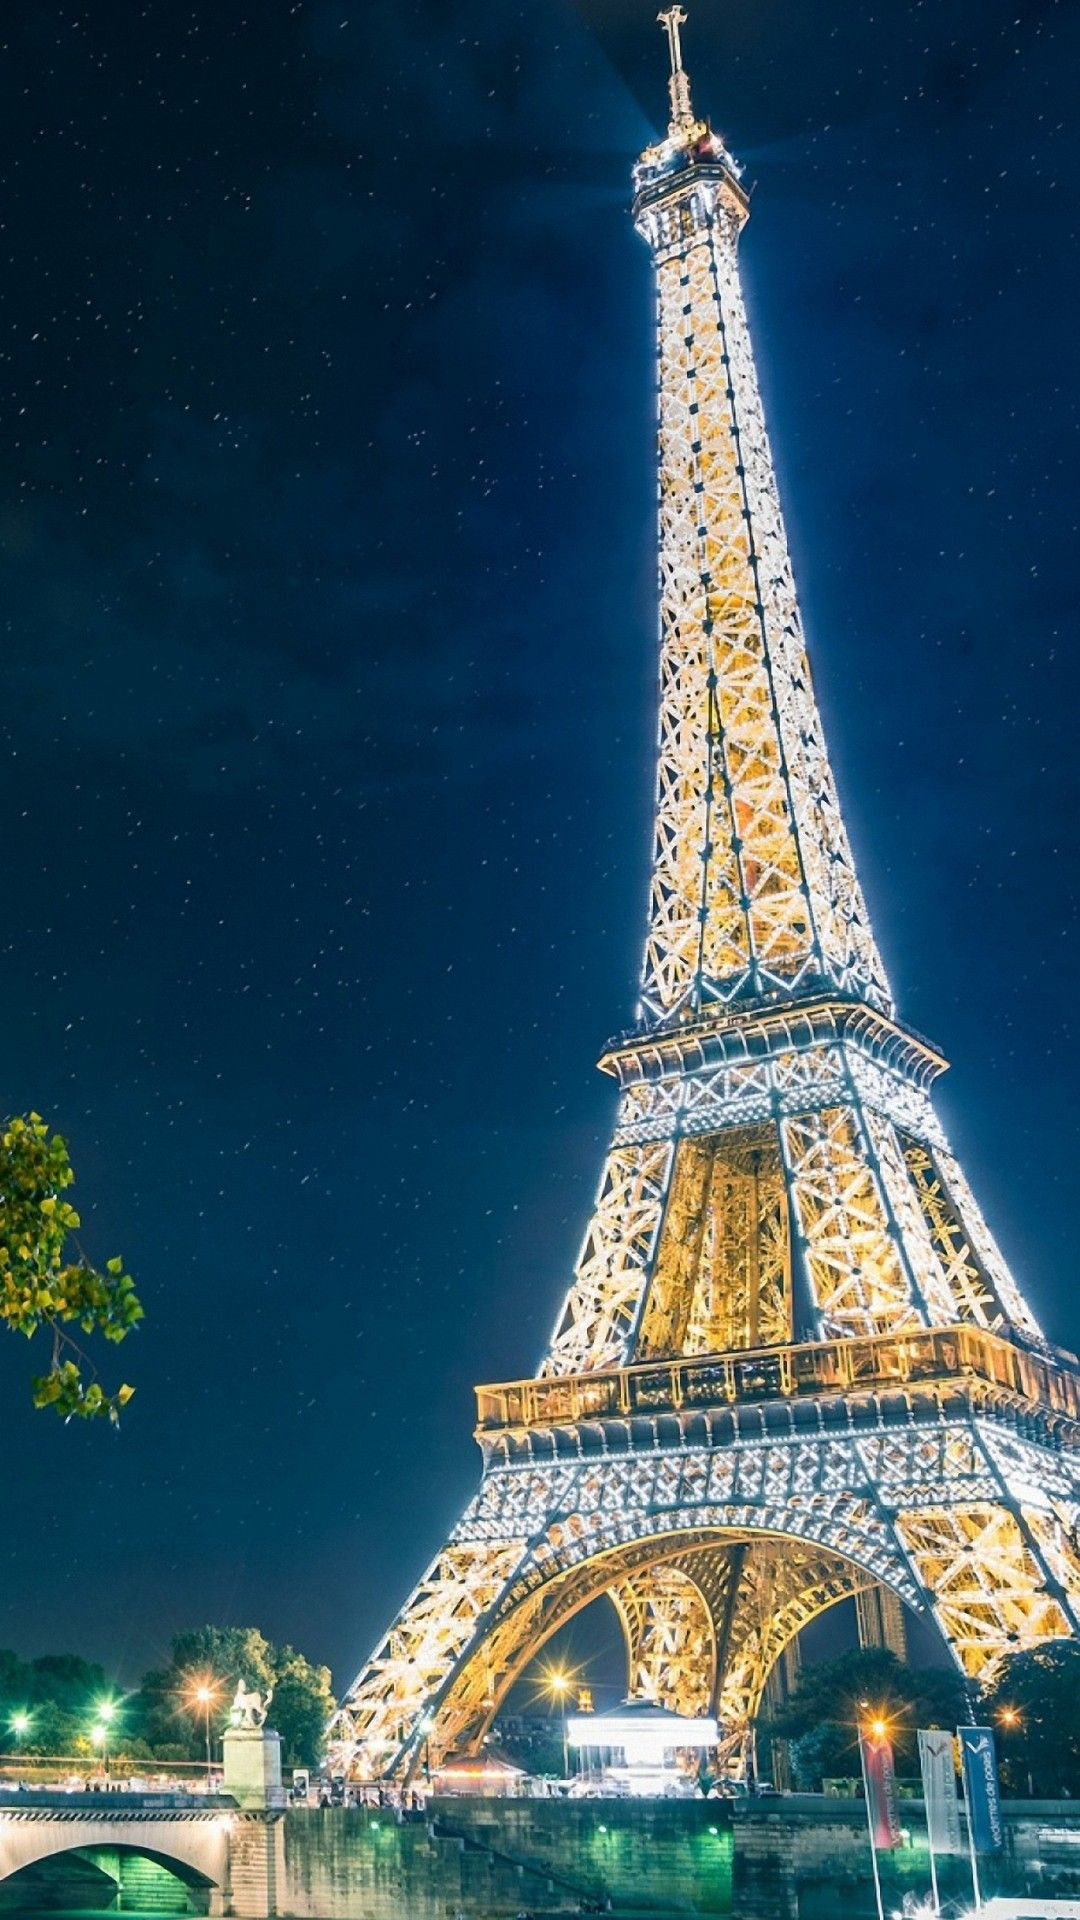 Eiffel Tower at night iphone wallpapers Pinterest